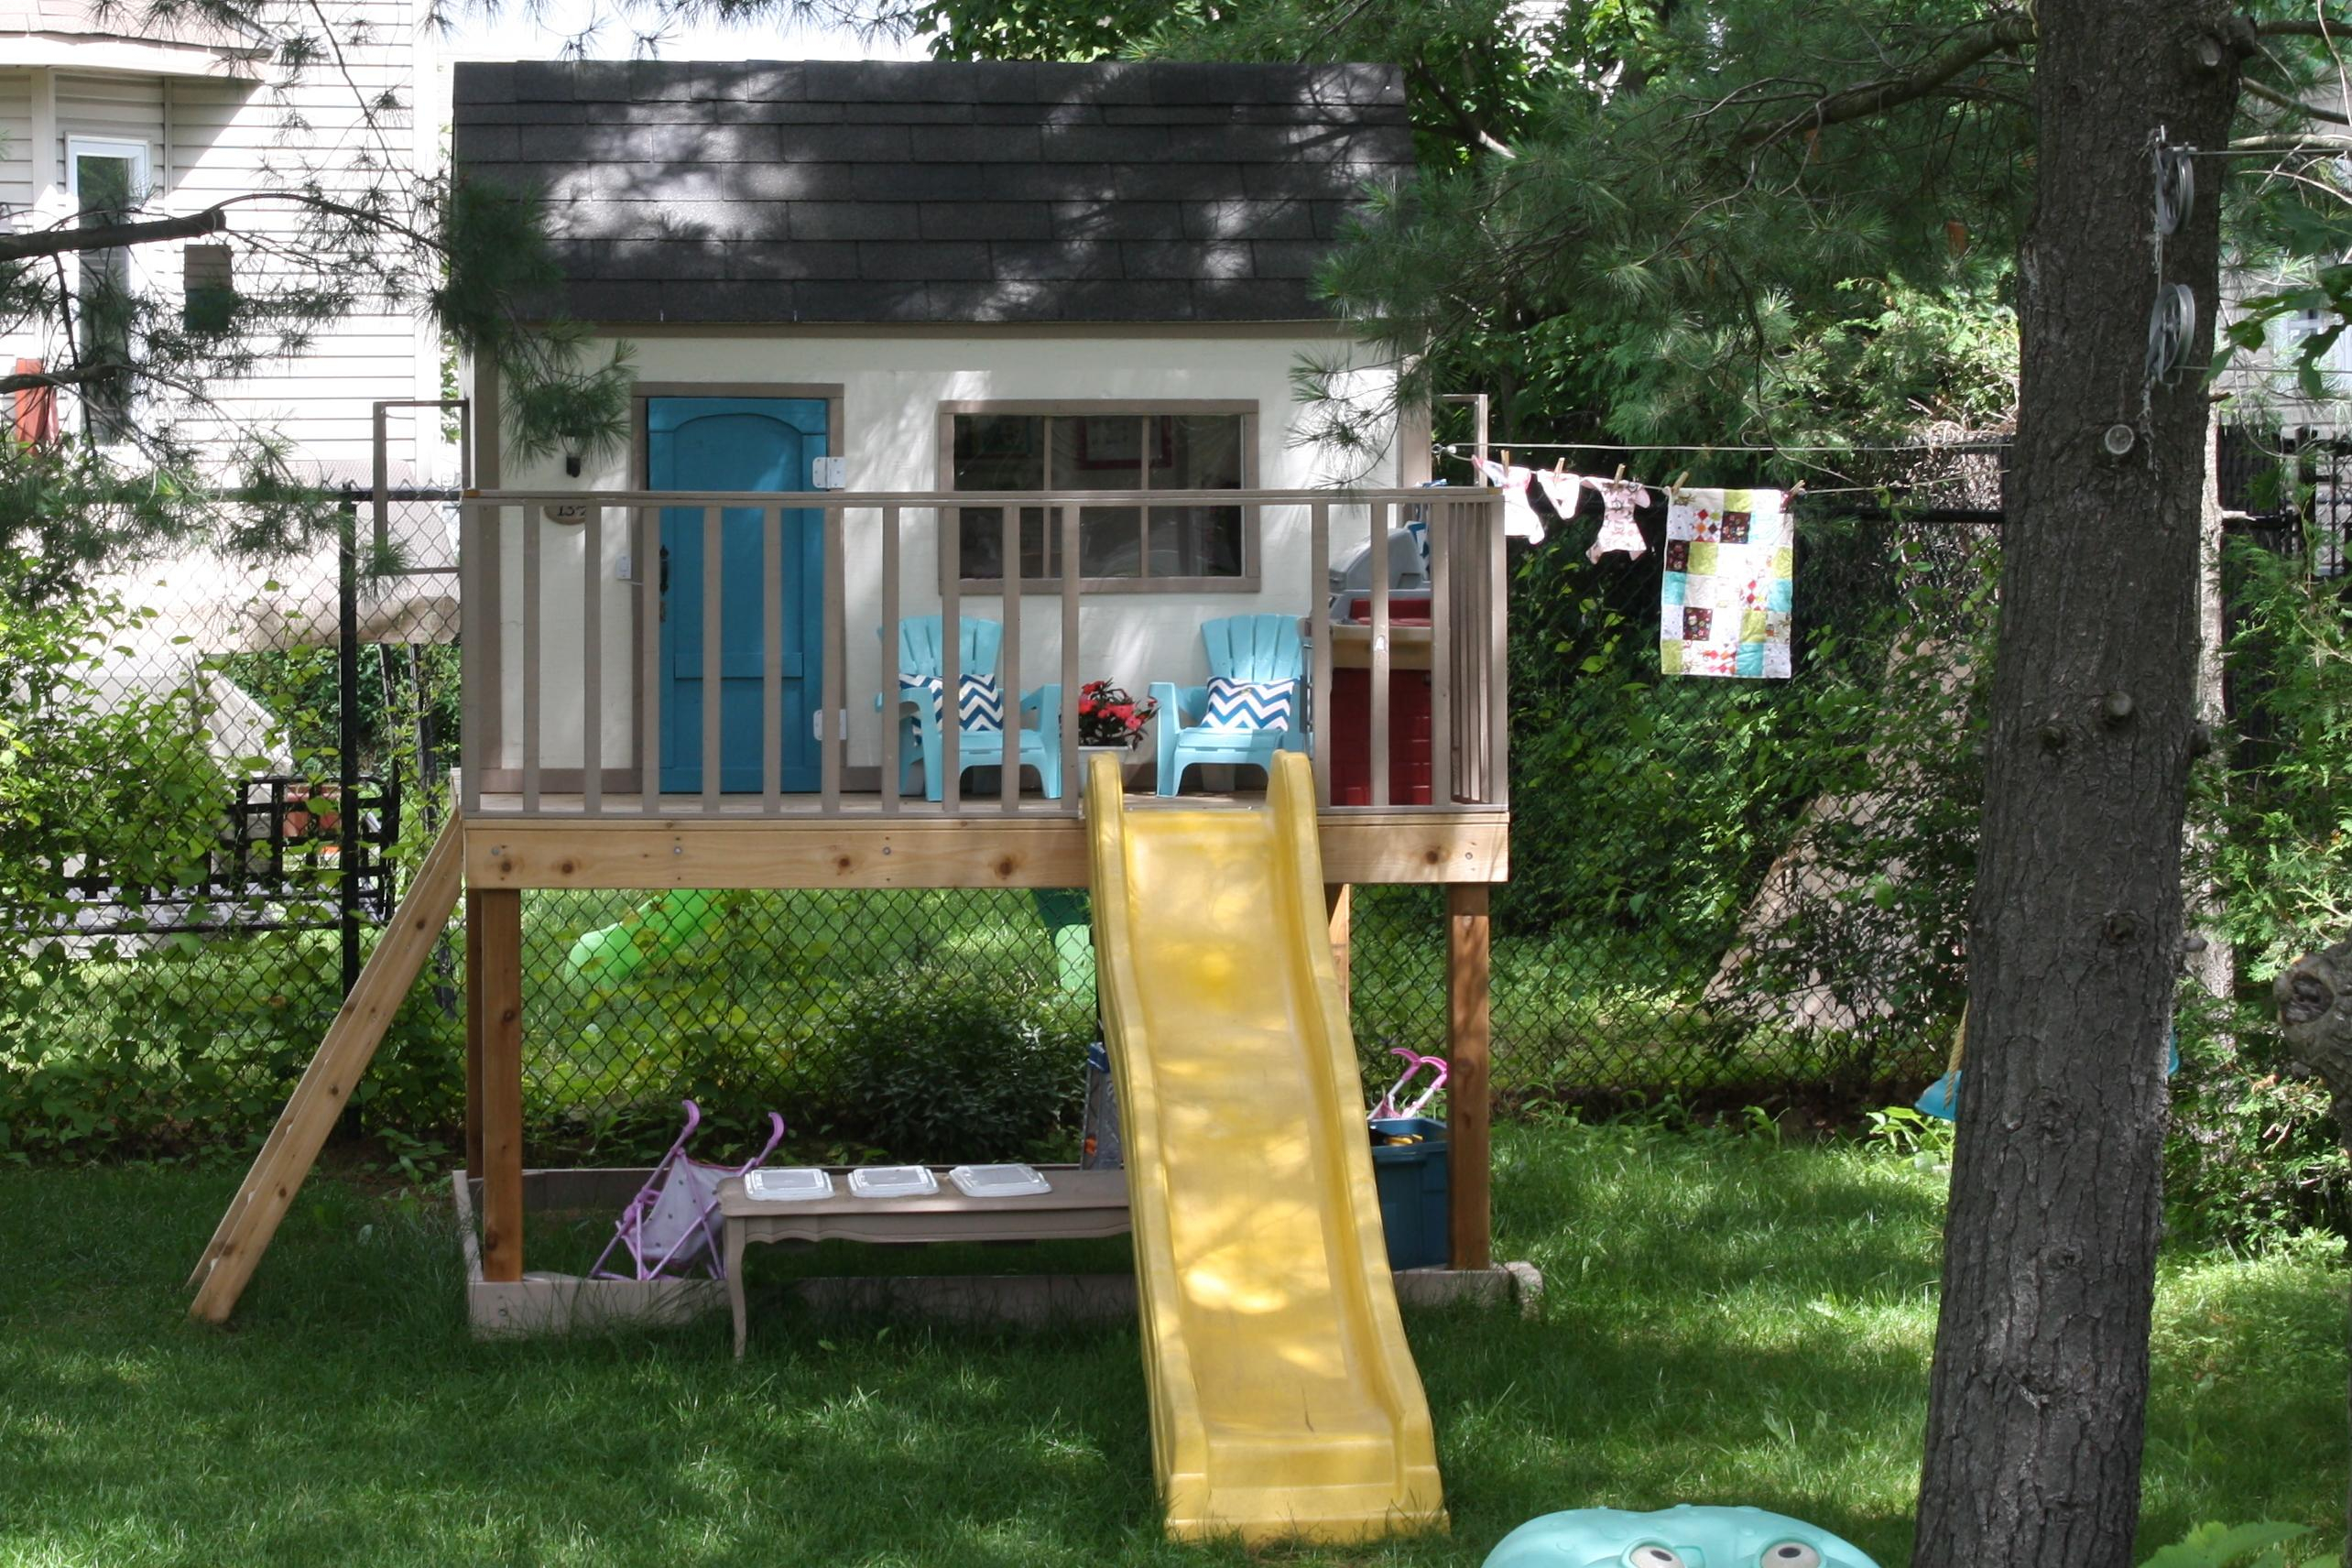 23.2. SIMPHOME.COM outdoor playhouses for toddlers 20 cool playhouses ideas